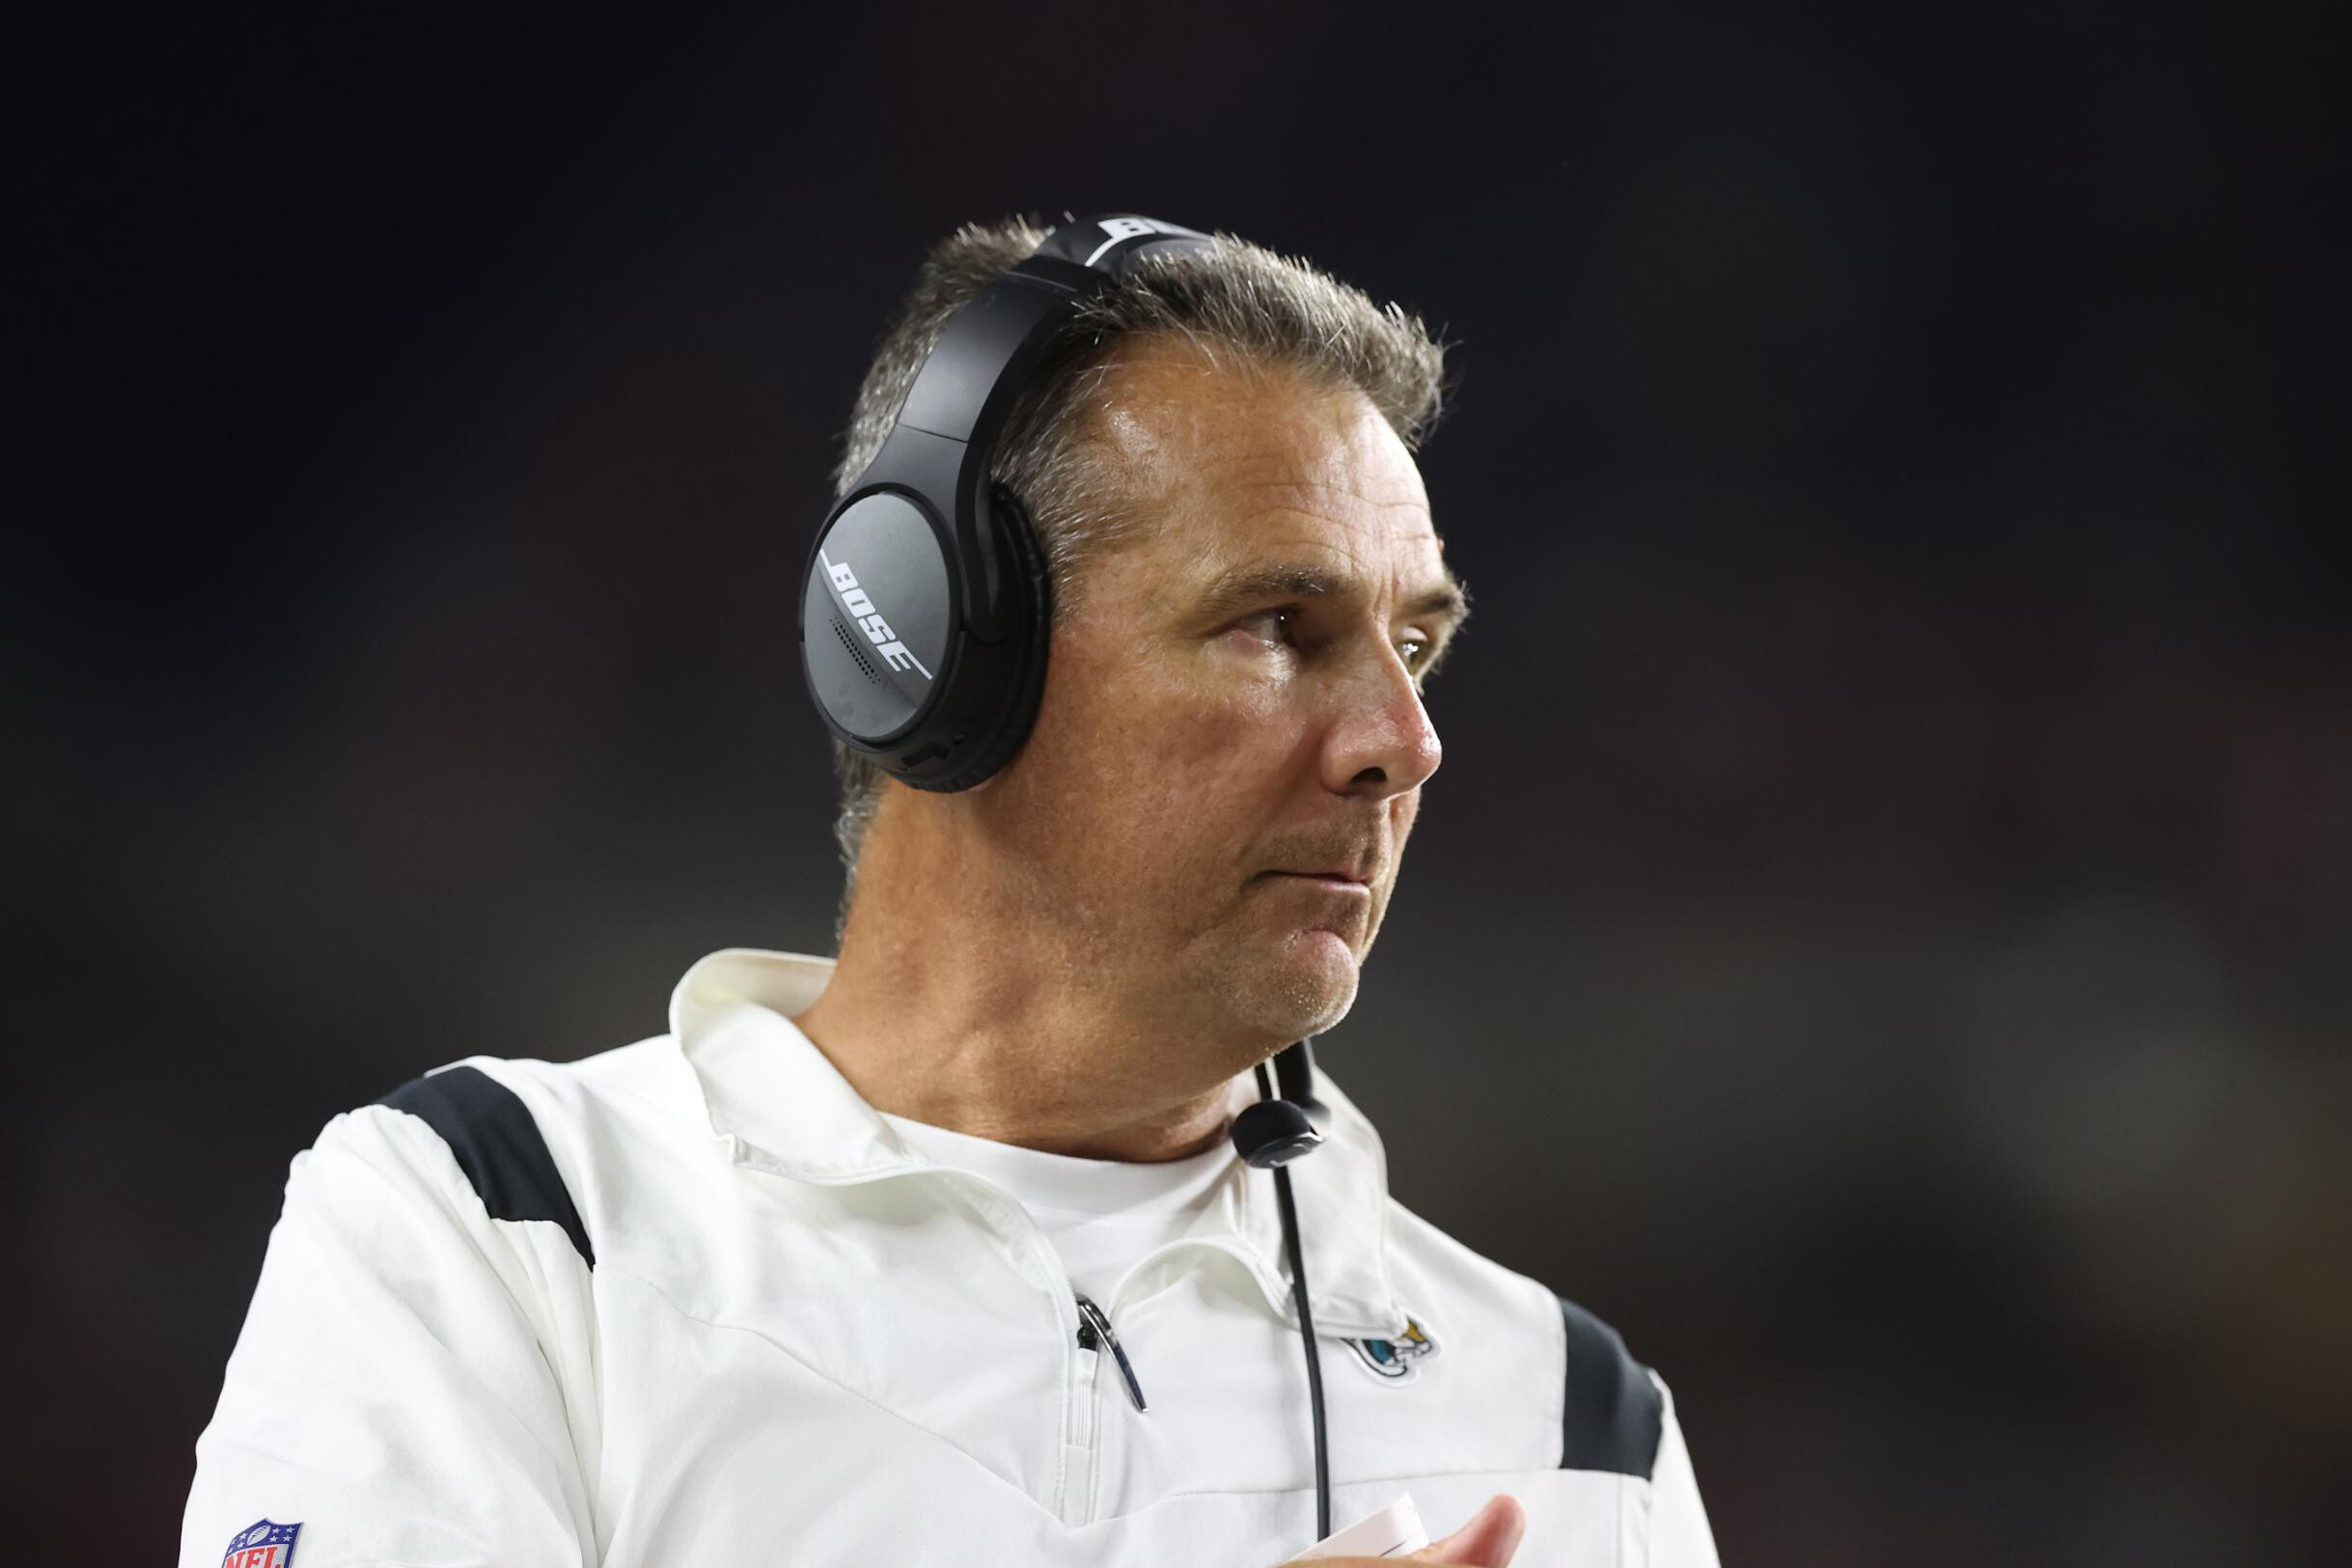 Jacksonville Jaguars owner Shad Khan says head coach Urban Meyer must 'regain our trust' after 'inexcusable' video